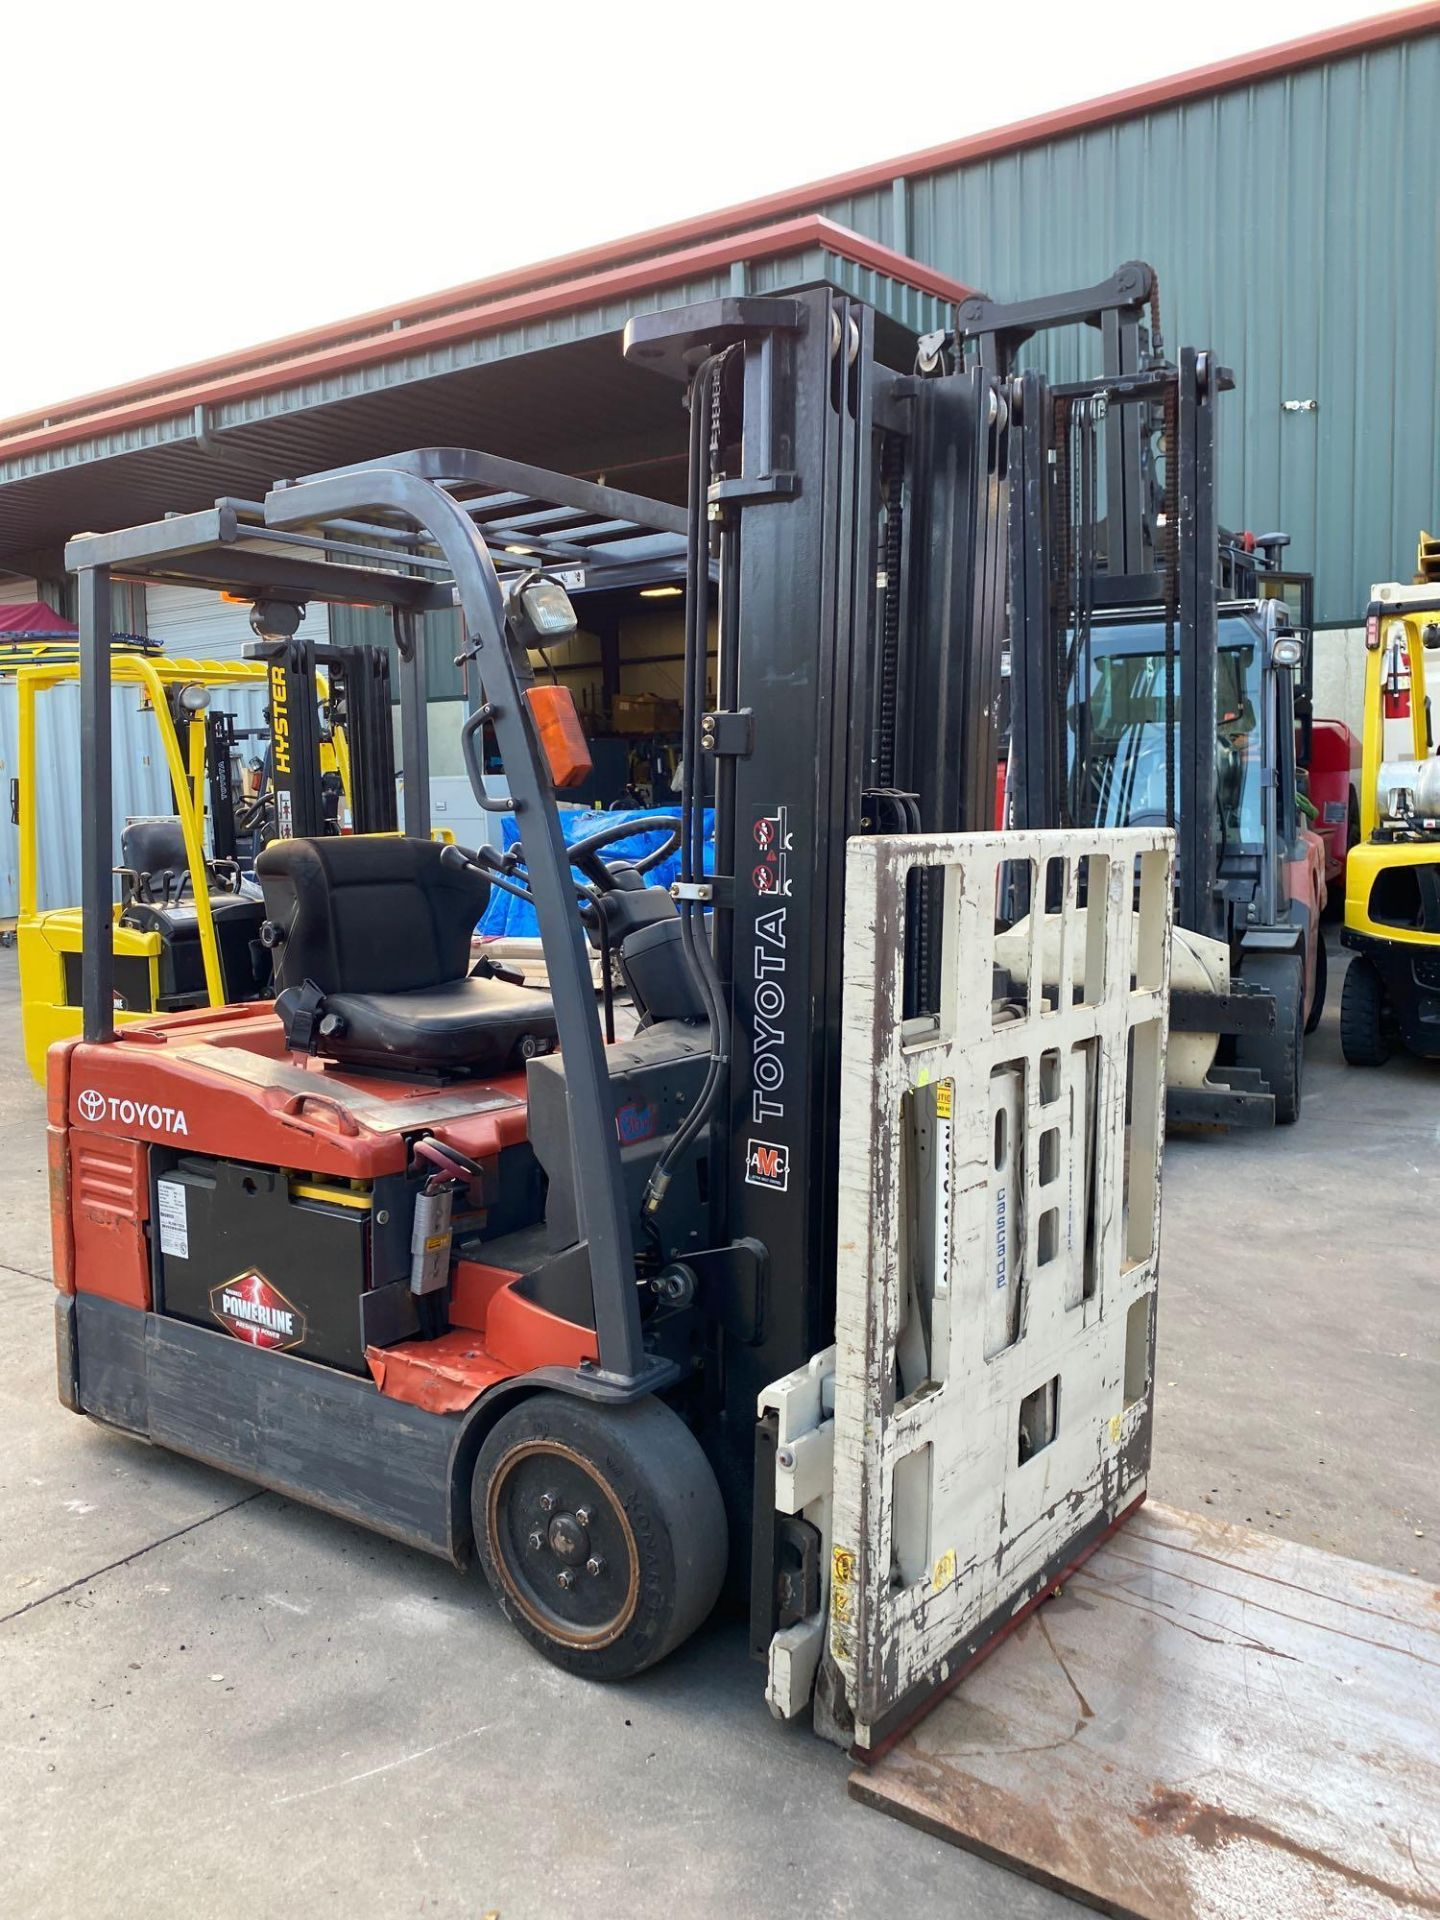 TOYOTA ELECTRIC FORKLIFT MODEL 7FBEU20, 4,000 LB CAPACITY, CASCADE PUSH/PULL ATTACHMENT, TILT, SIDE - Image 10 of 24